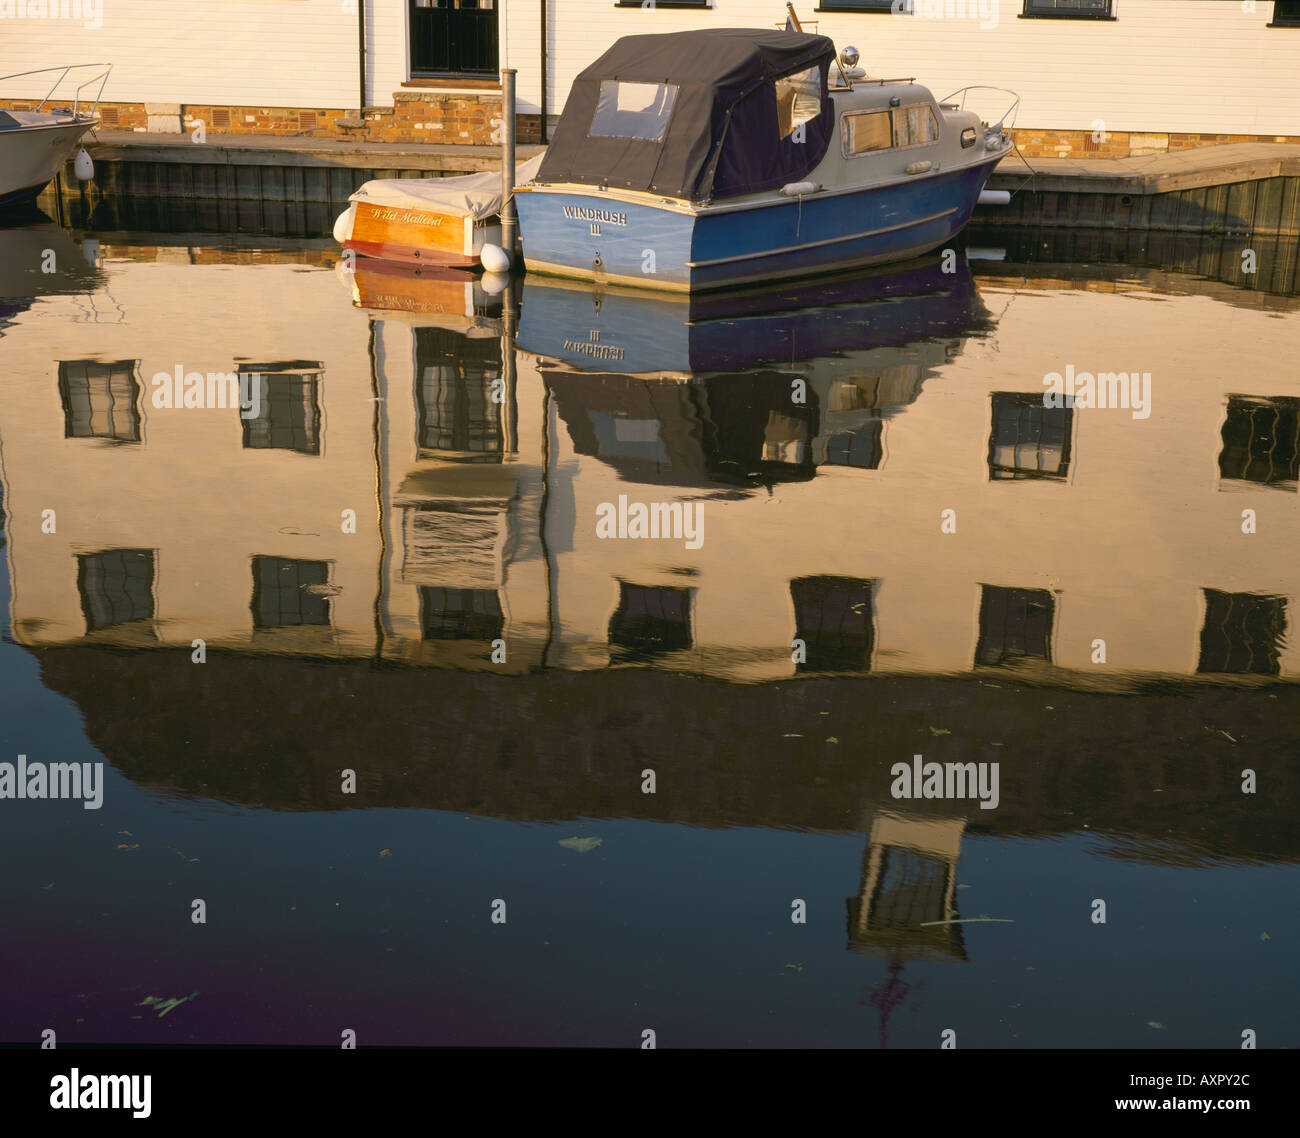 A boat beside the old Water Mill on the River Thames at Hambleden - Stock Image